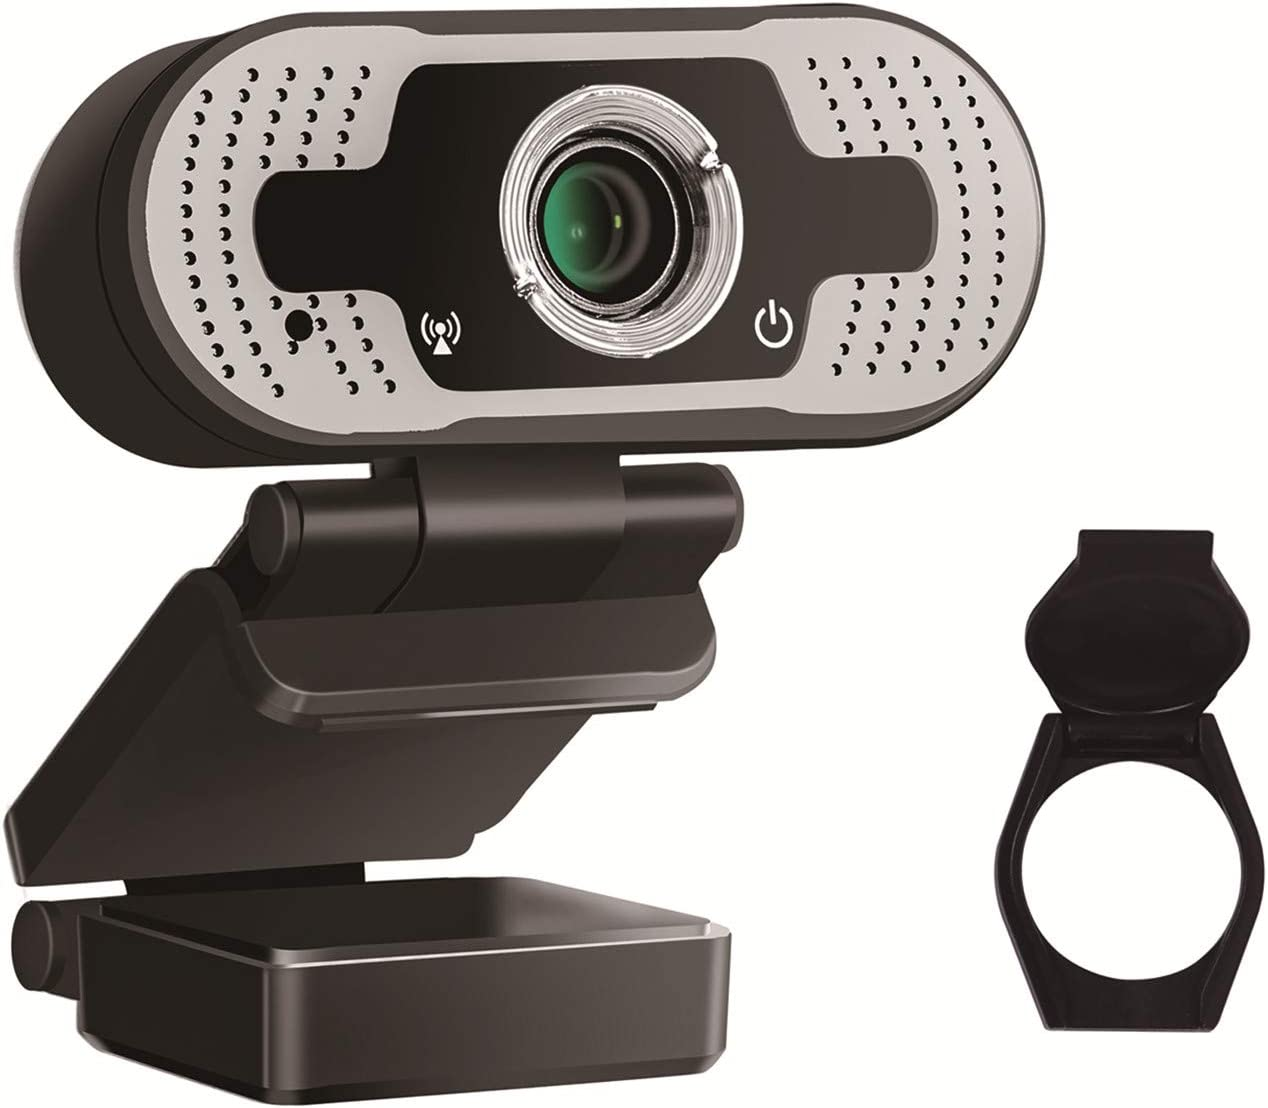 Webcam with Microphone, Used for Desktop Computer Laptop Computer 1080P HD Computer Camera [Plug and Play] USB 2.0 [30Fps] 3 Million Pixels, Used for Video Conference/Call/Game, (with Privacy Cover)